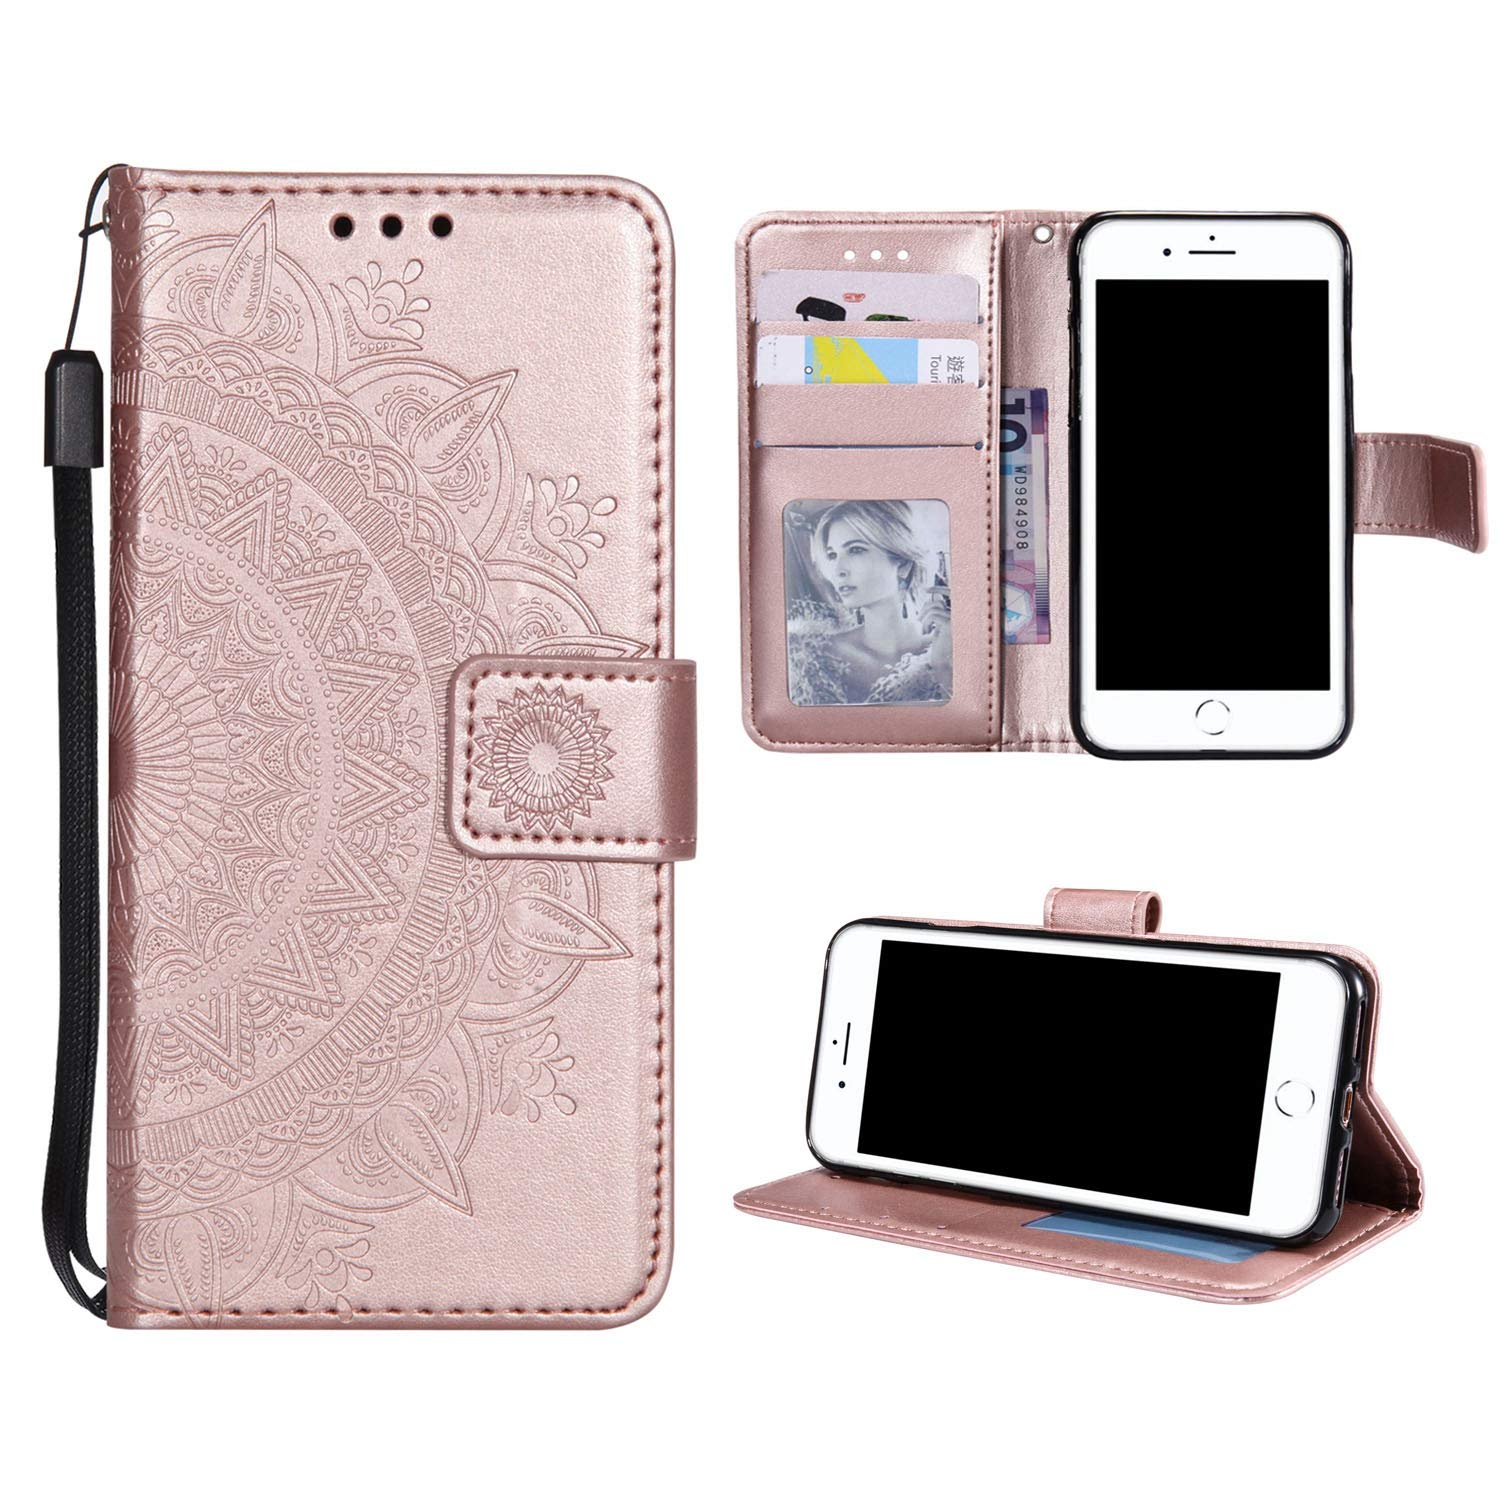 Case for iPhone 7 Plus PU Leather Flip Wallet Cover, Mistars for iPhone 8 Plus Tribal Mandala Flower Pattern Embossed Full Body Protection Cove with Card Holder Kickstand Magnetic Closure Shell Inner Soft TPU Silicone Bumper for Apple iPhone 7 Plus / 8 Plu